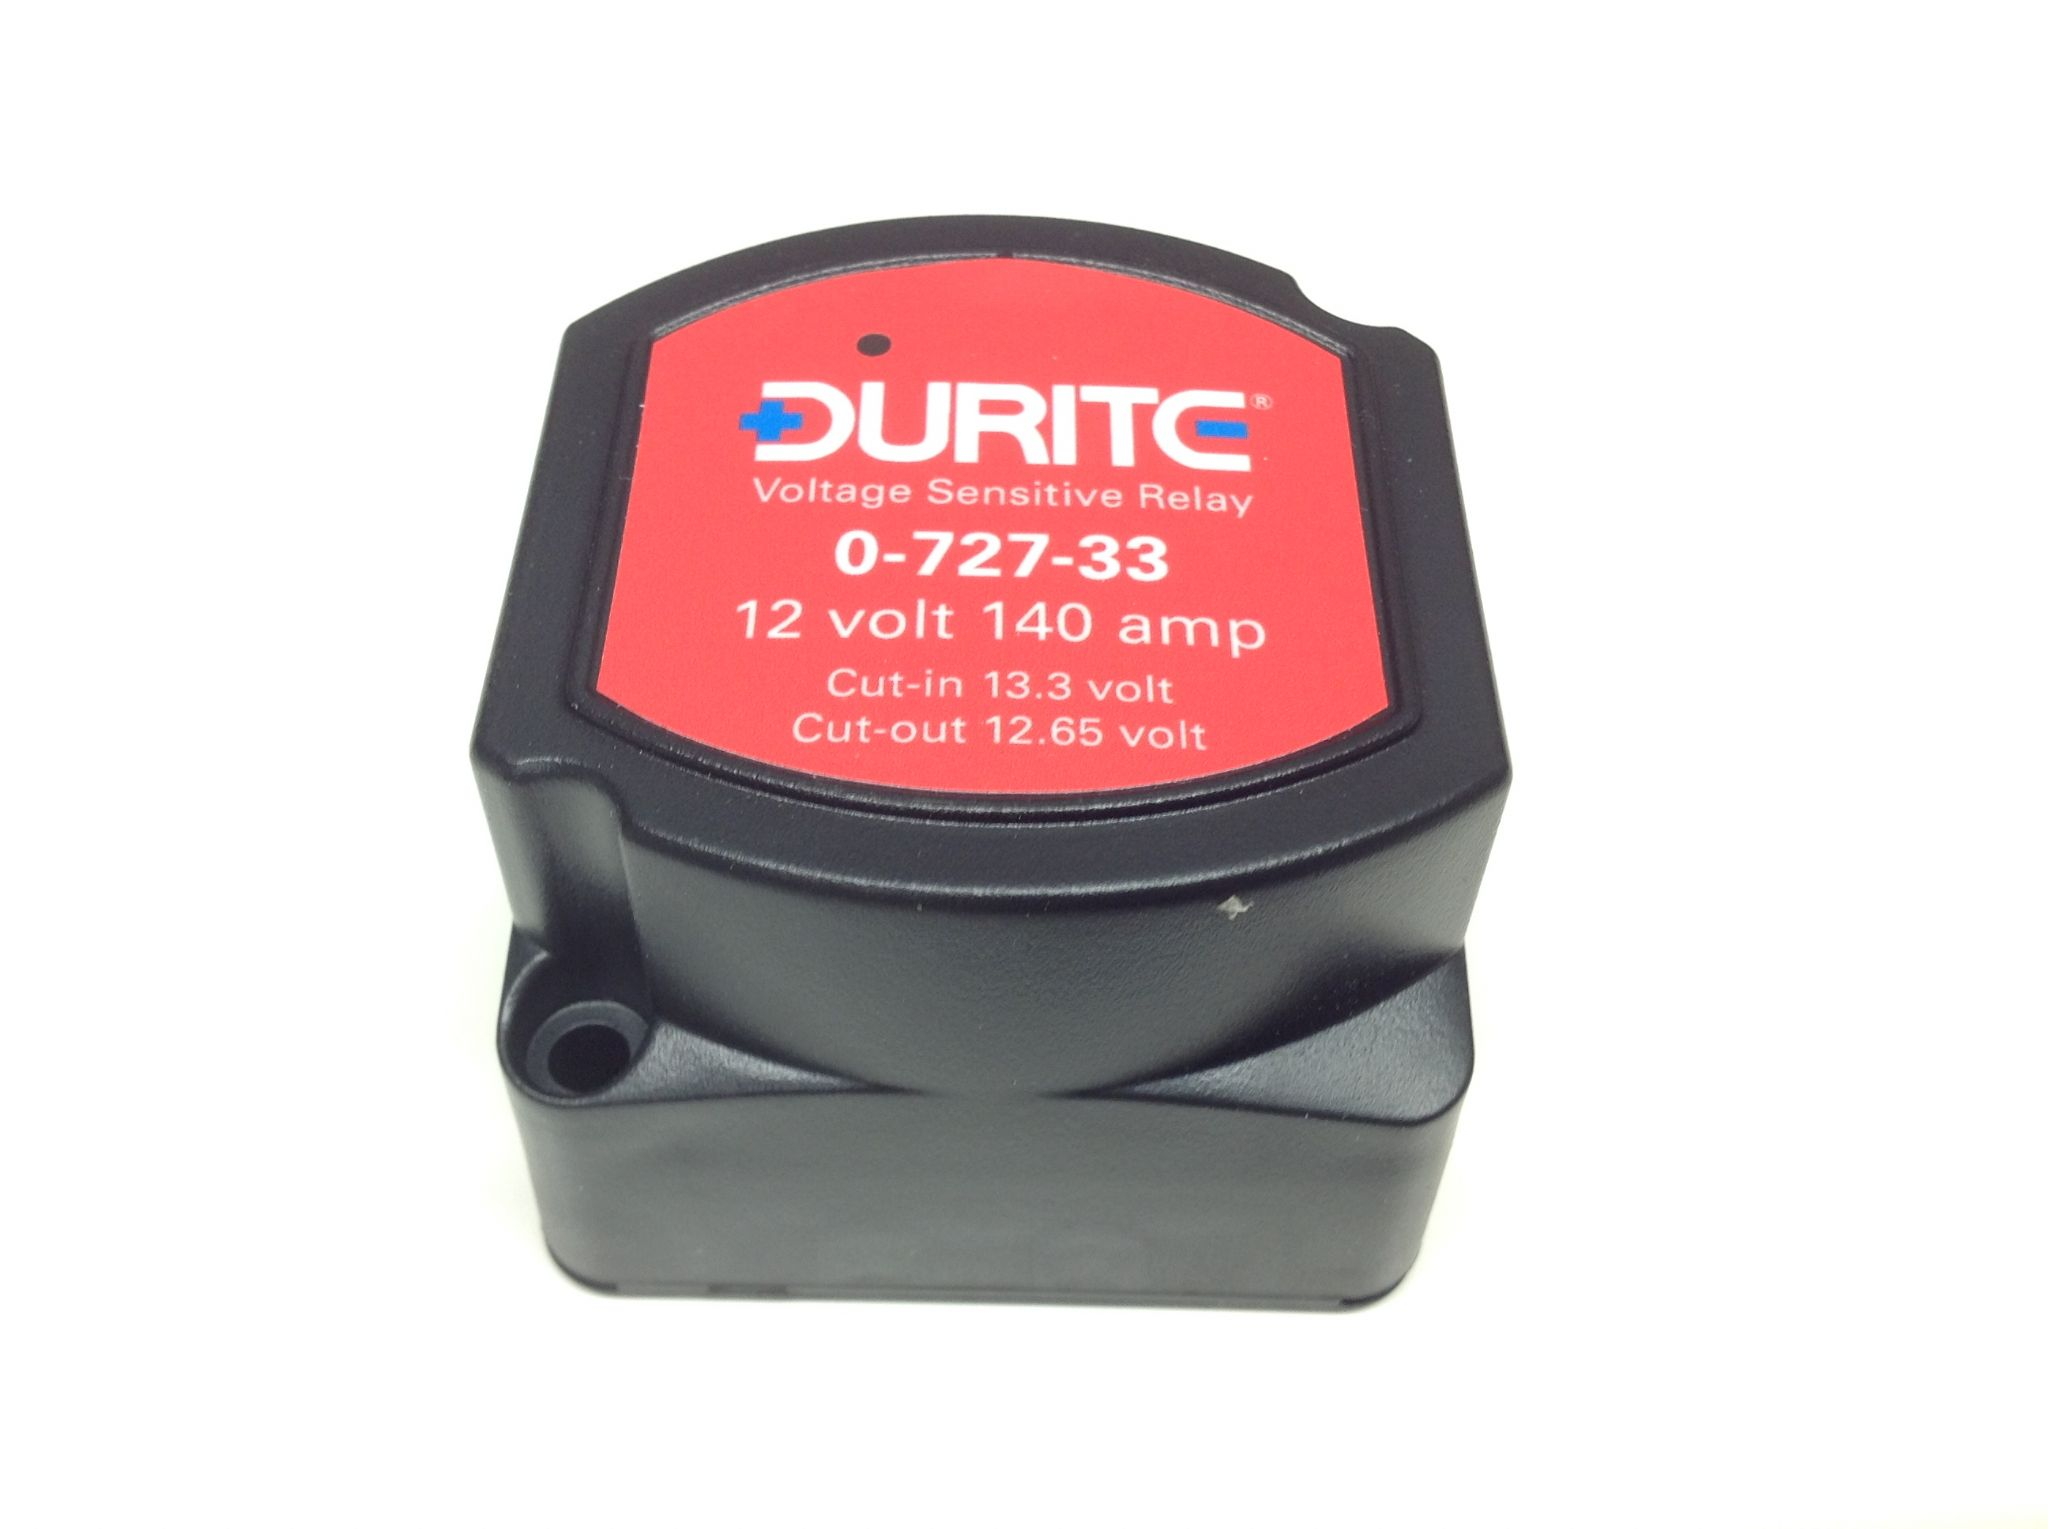 12v 140amp Durite Voltage Sensitive Relay 0